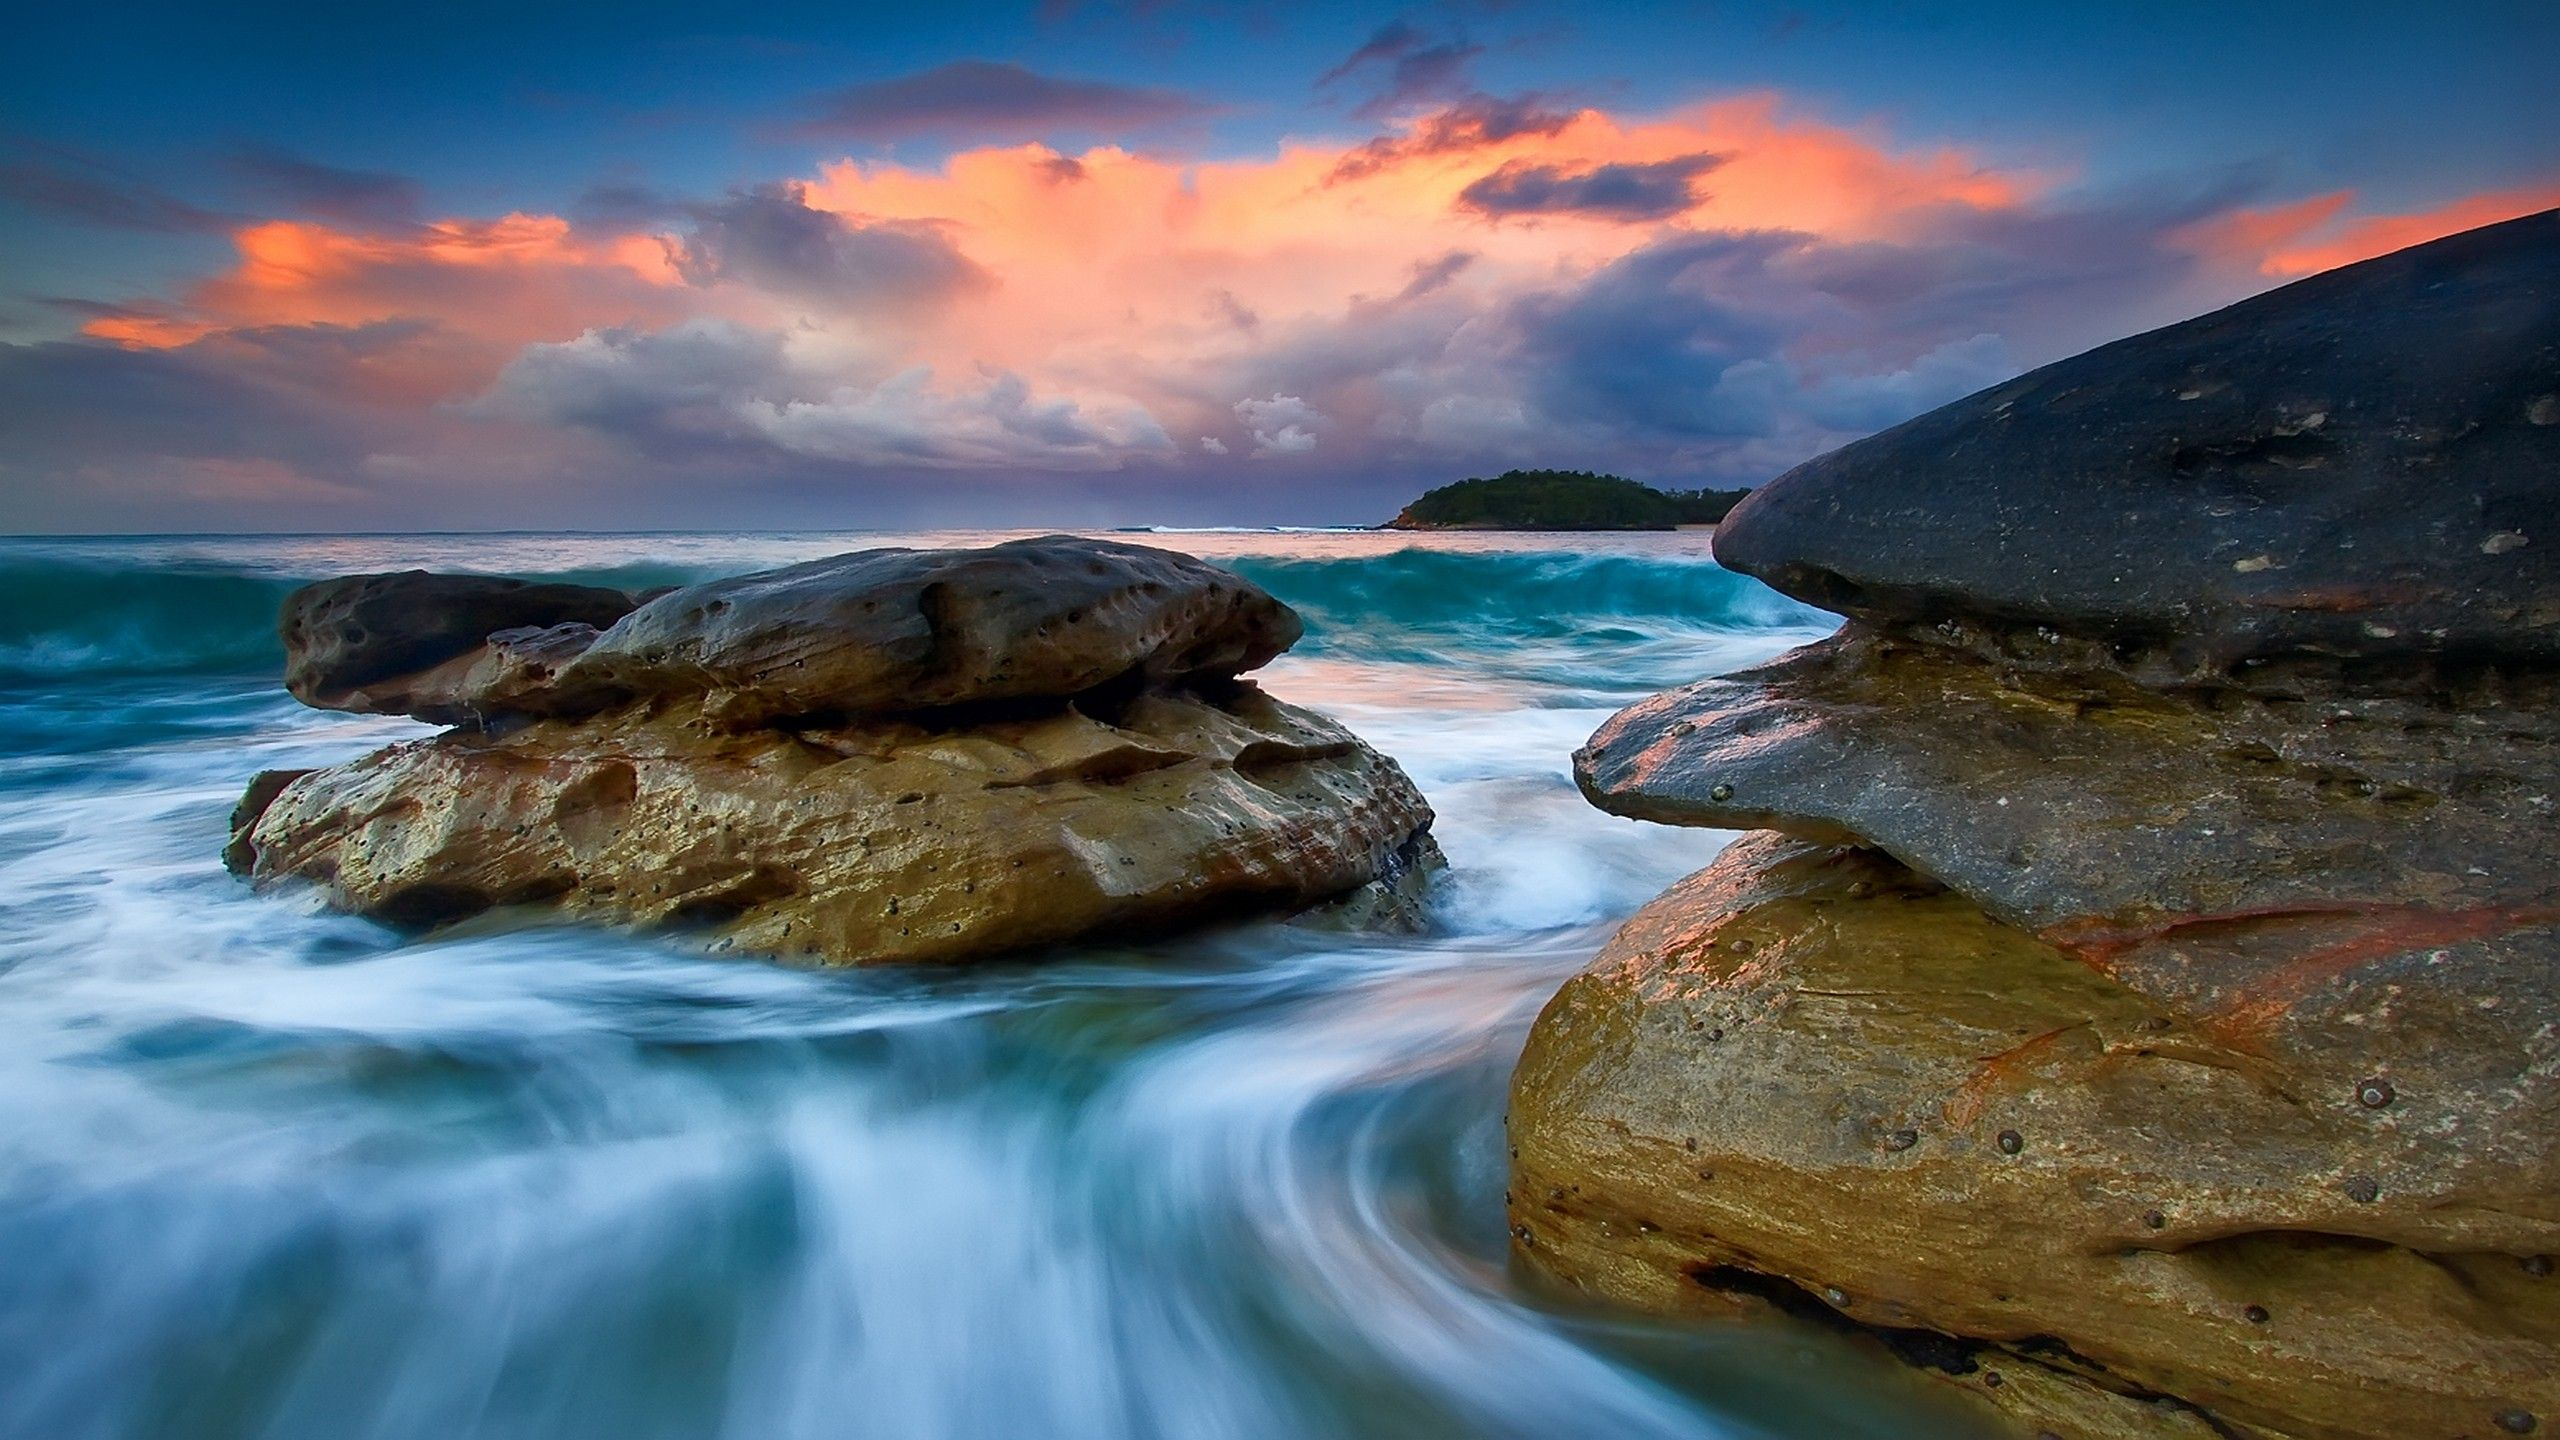 Tide High Beautiful Time Lapse Water Flow Rocks Pictures Hdr Photography Sunset Wallpaper Beach Rocks